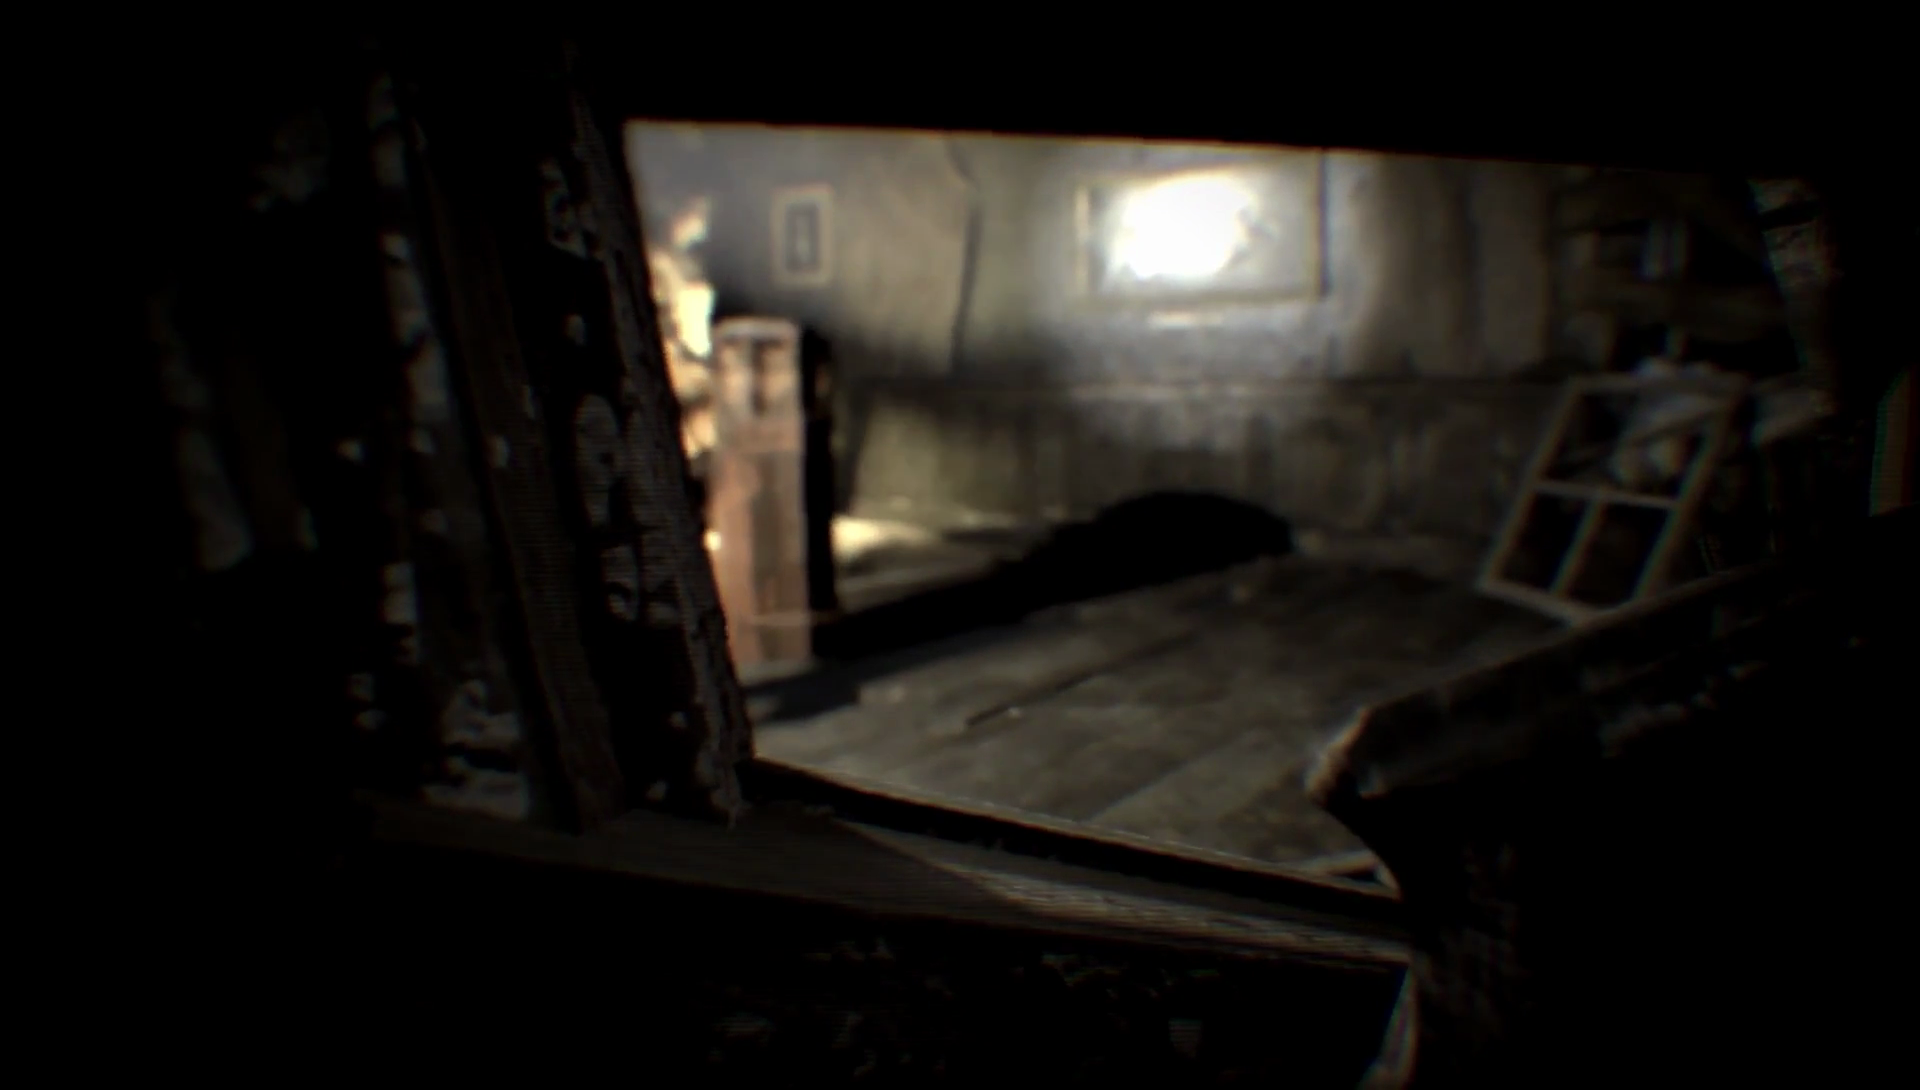 New Resident Evil 7 Gamescom Trailer Shows Player Being Hunted